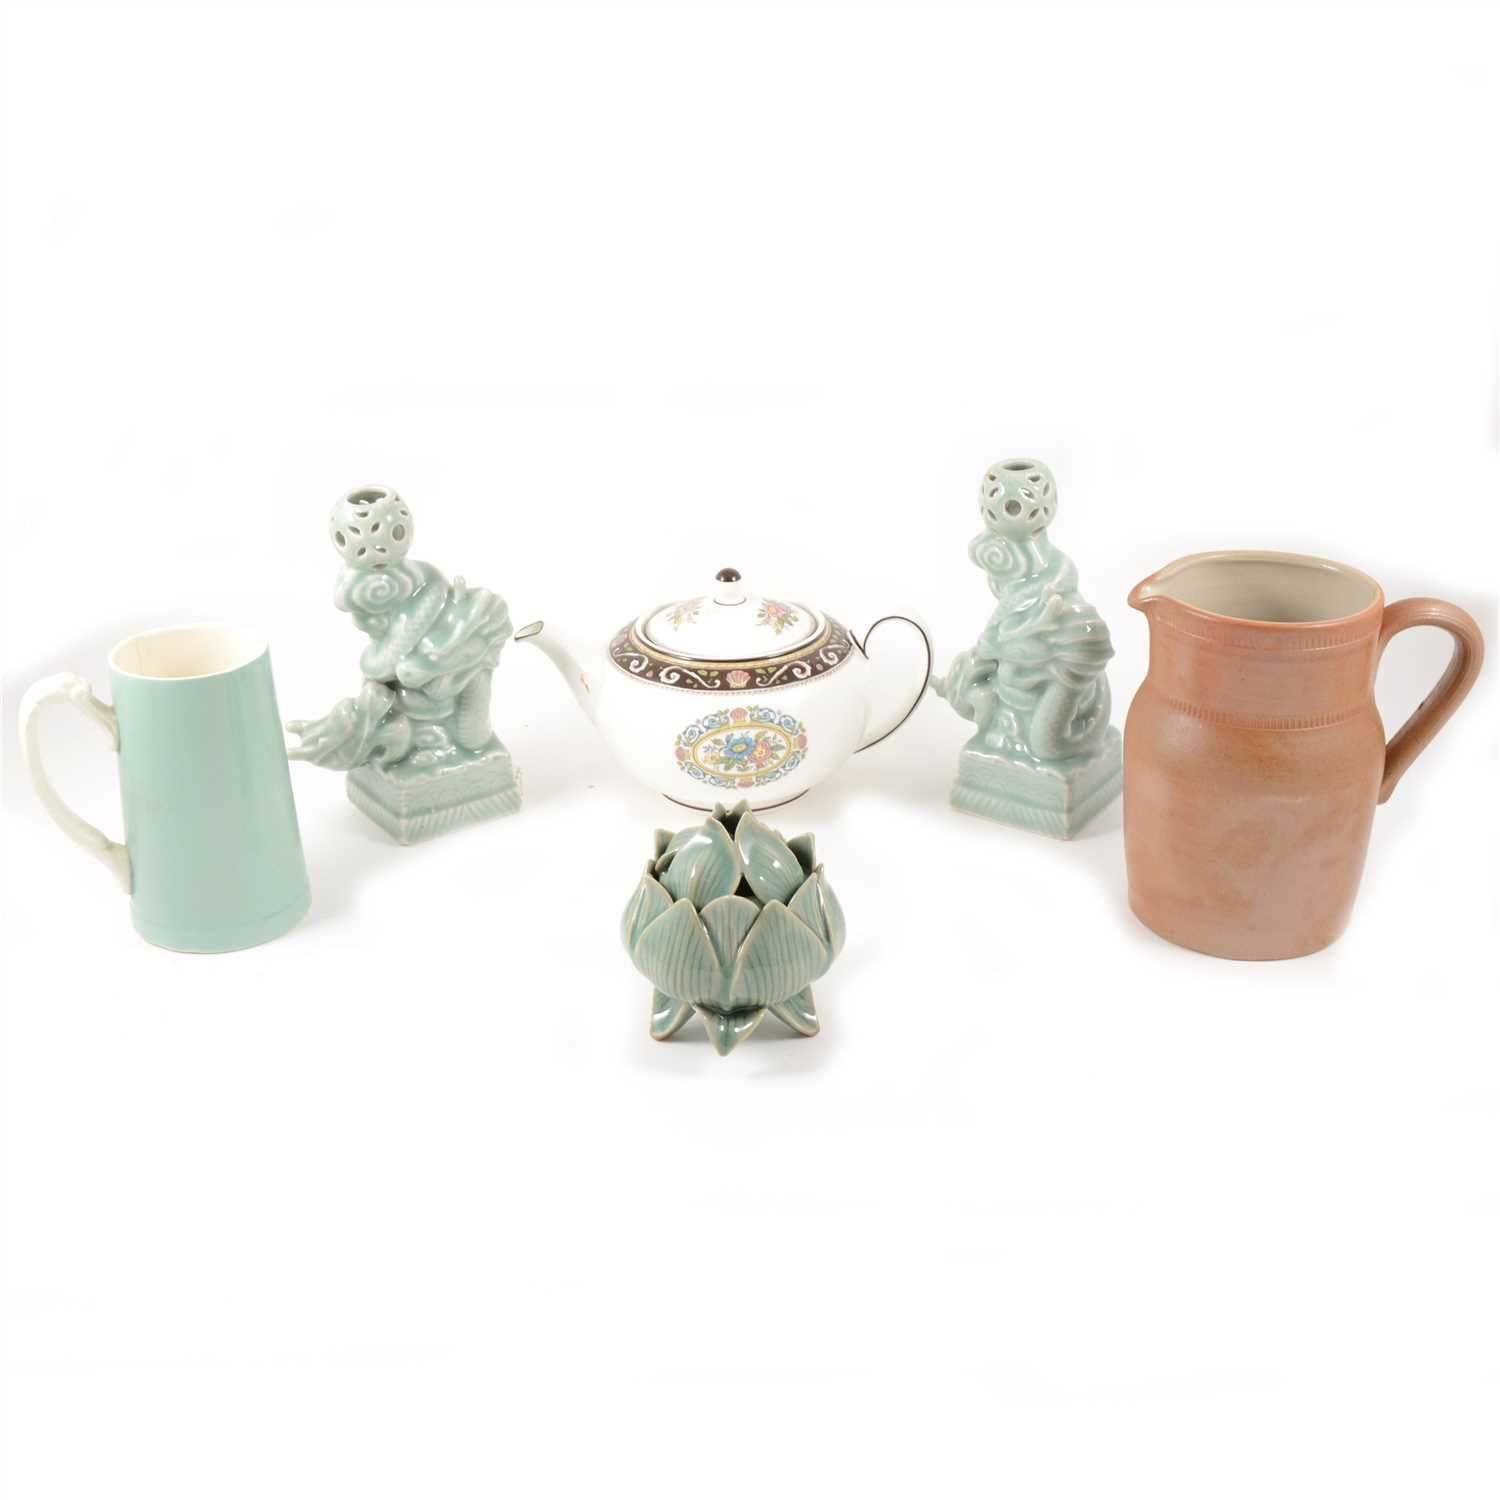 Lot 10 - A Royal Worcester Evesham Ware biscuit jar, six Waterford crystal glasses, and other assorted ceramics.